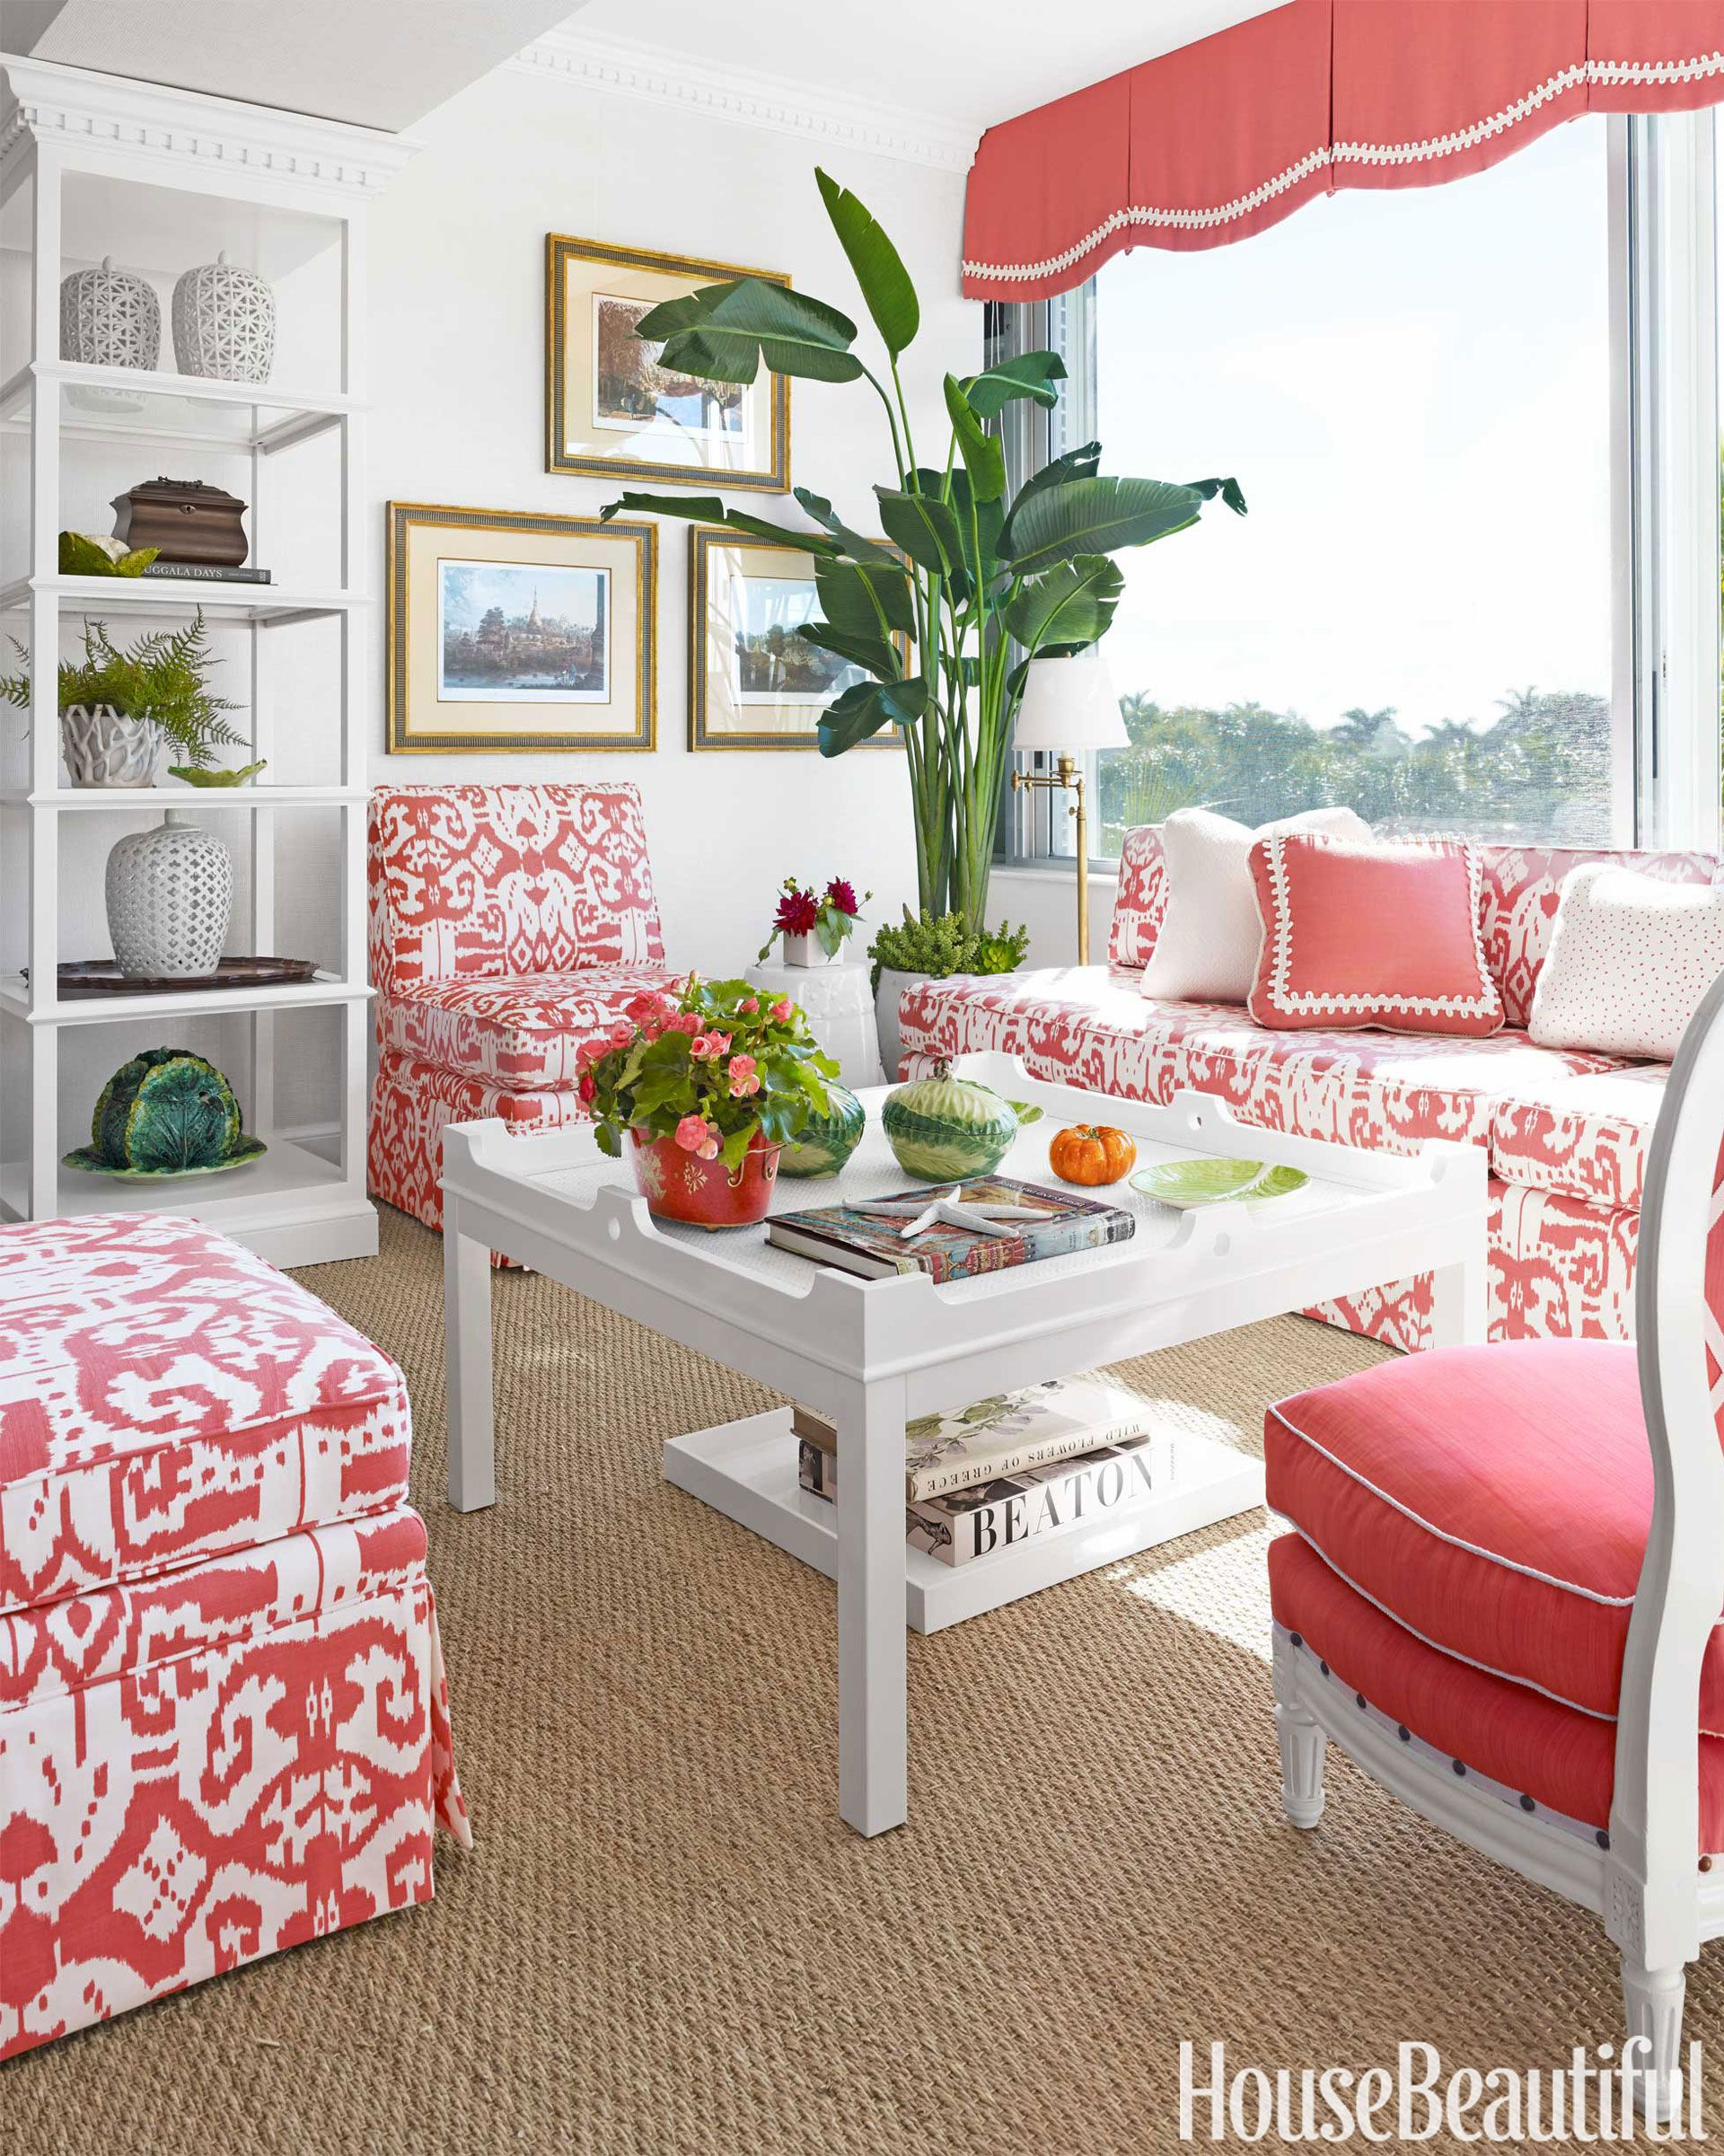 Top Pin of the Day: A Tropical-Inspired Living Room